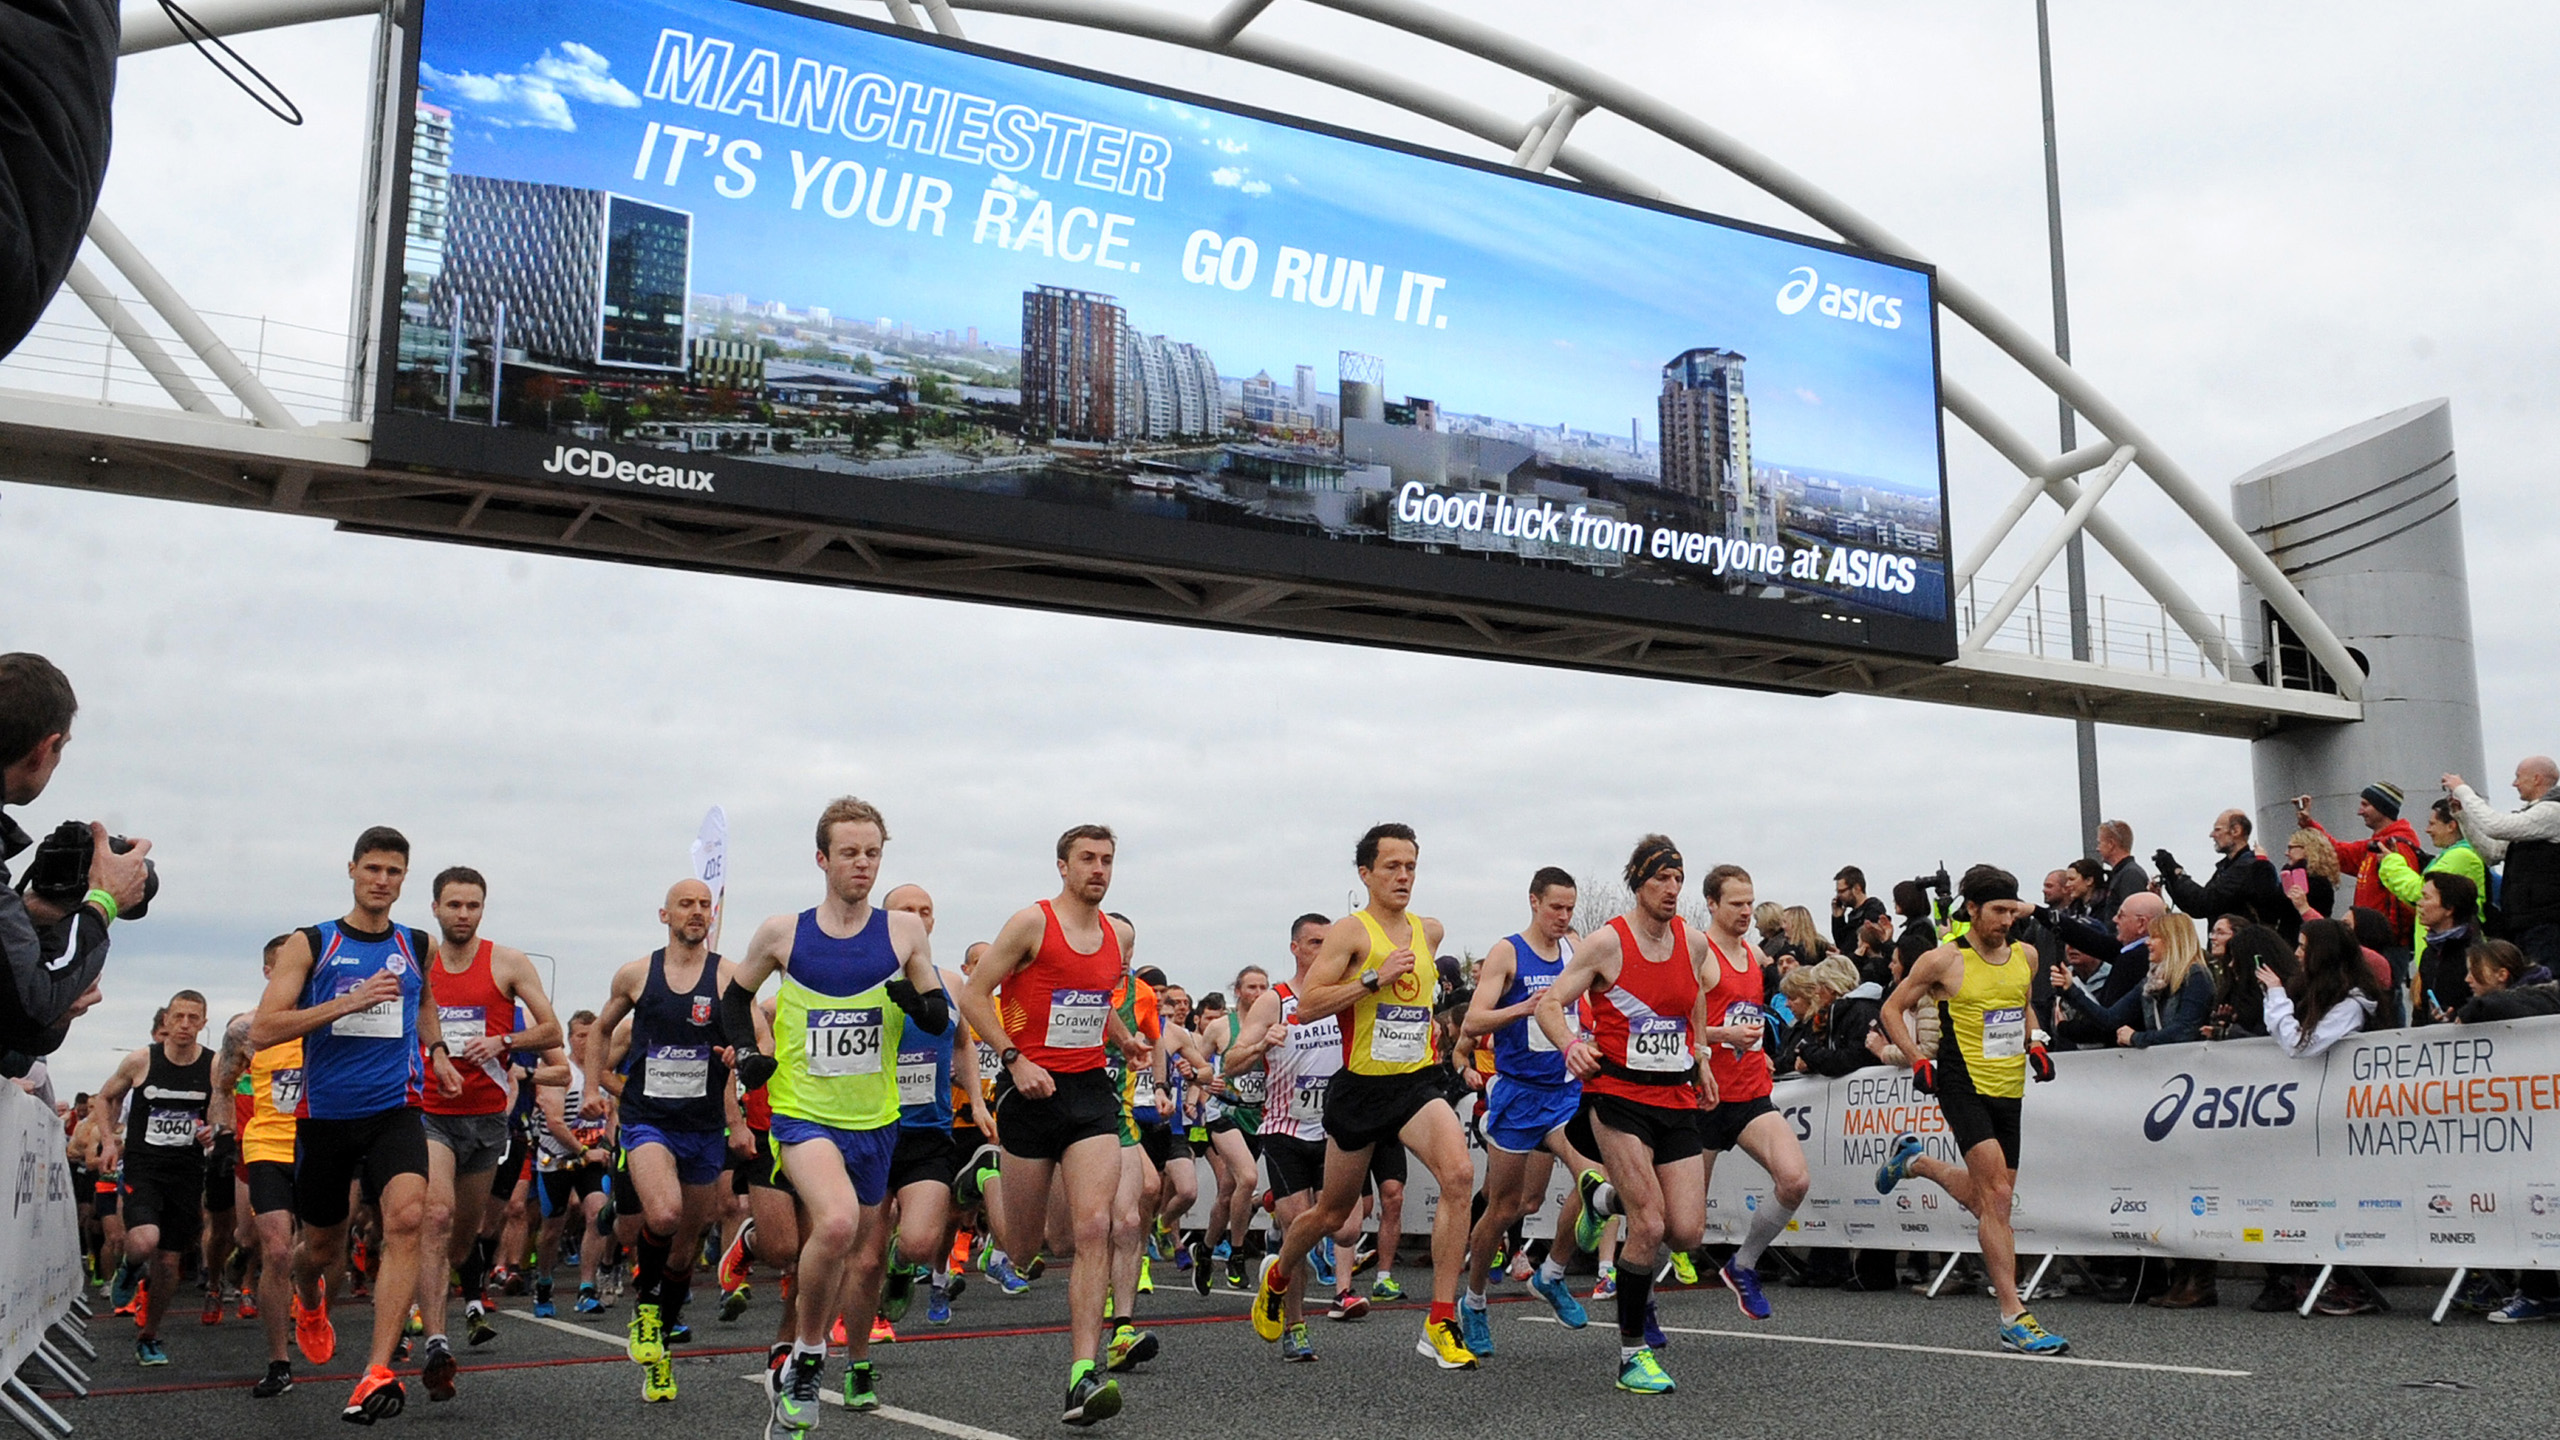 ASICS Greater Manchester Marathon – 8th April 2017